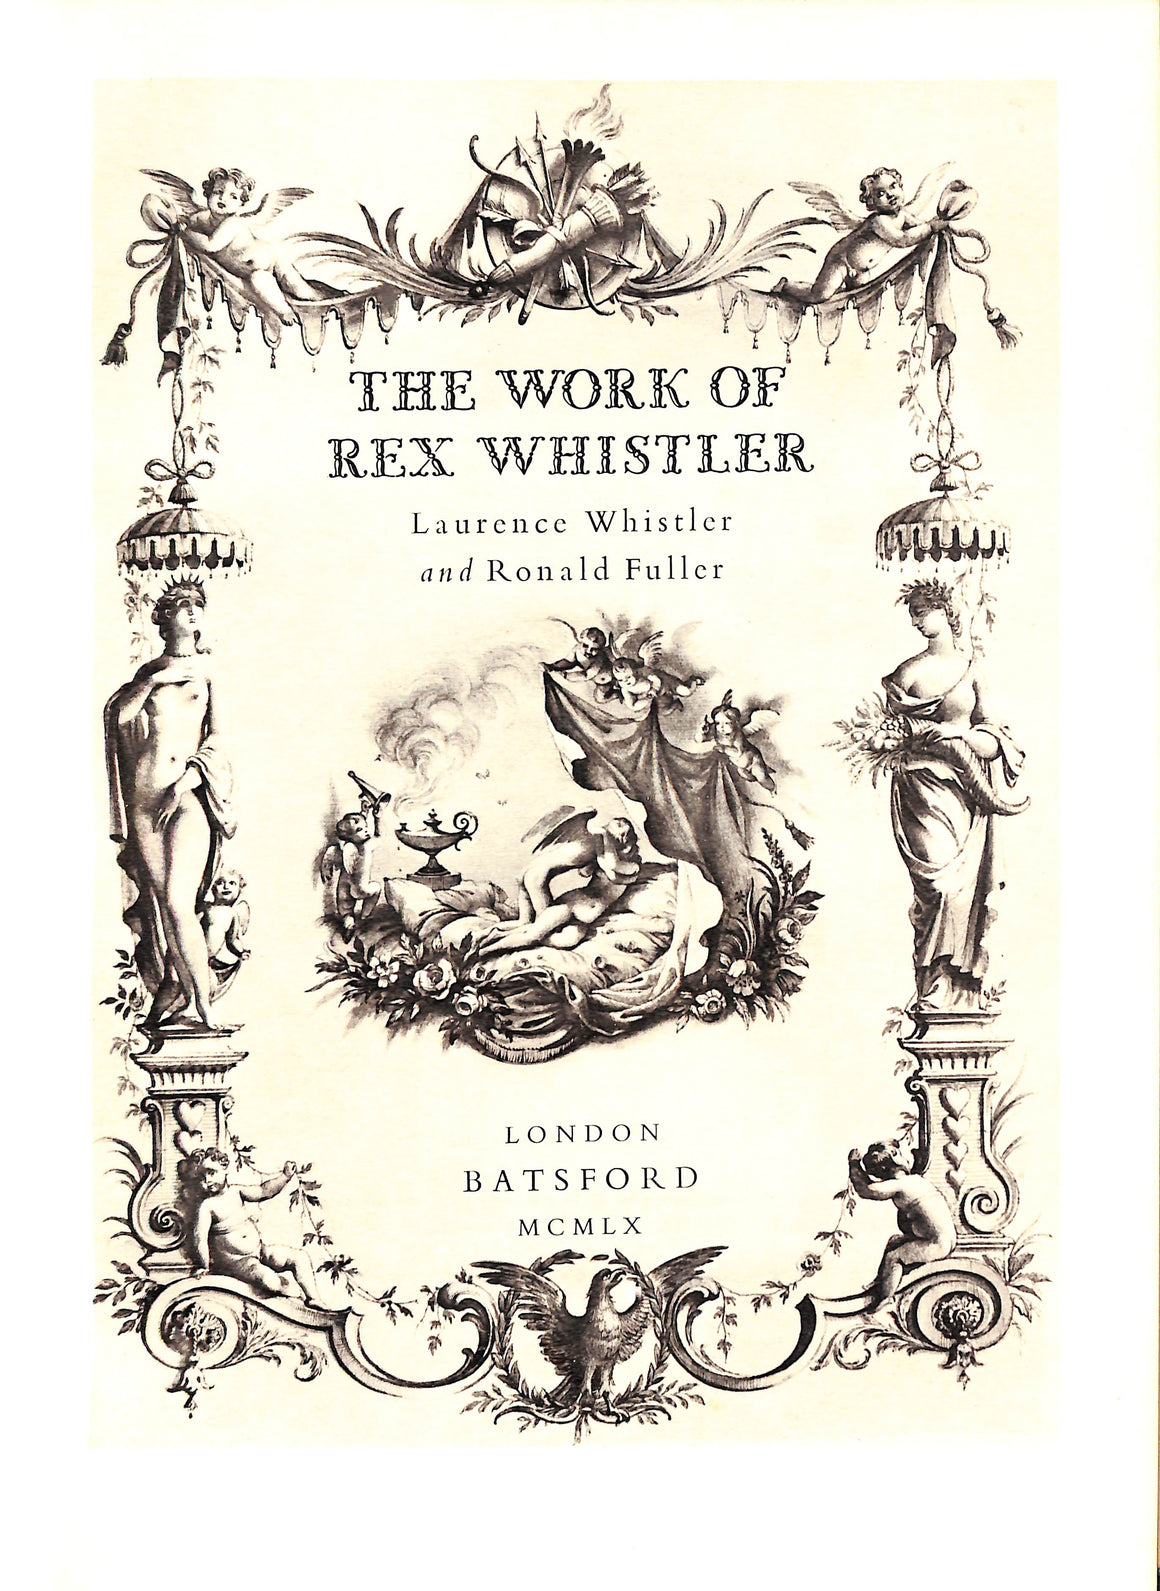 'The Work of Rex Whistler' 1960 by Laurence Whistler